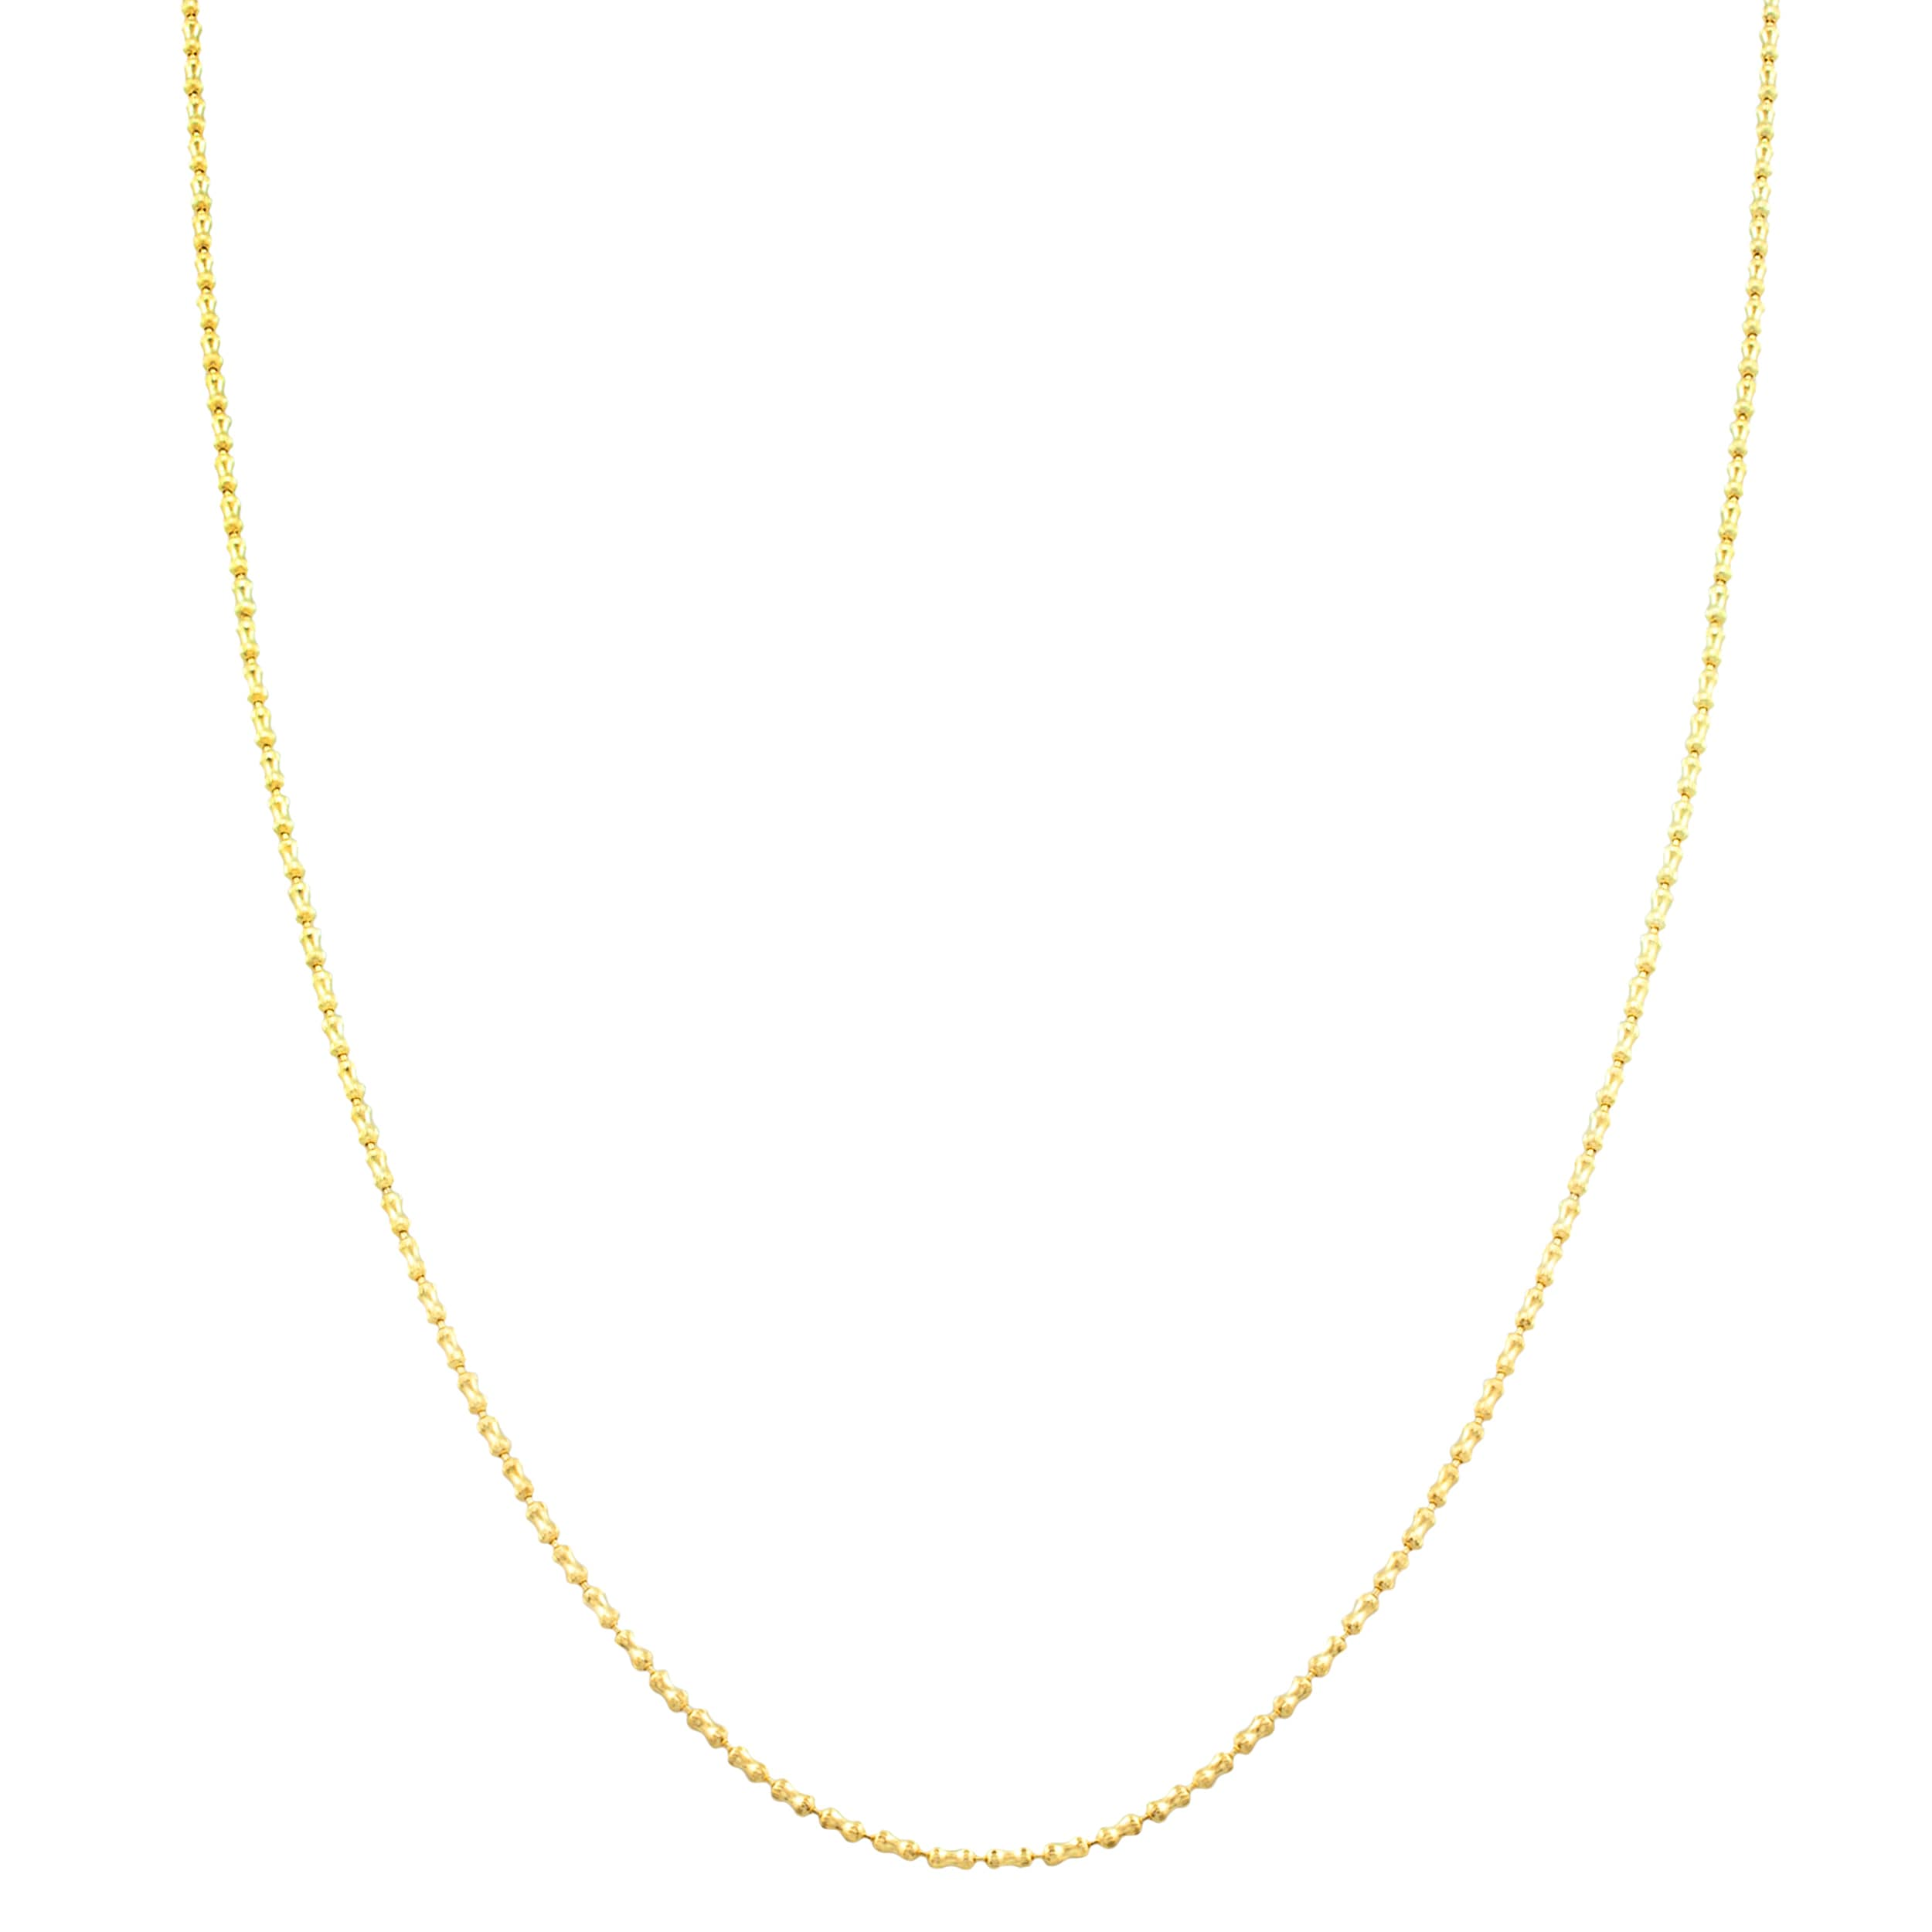 Jewelry Chain Anklets 10k 1.10mm Box Chain